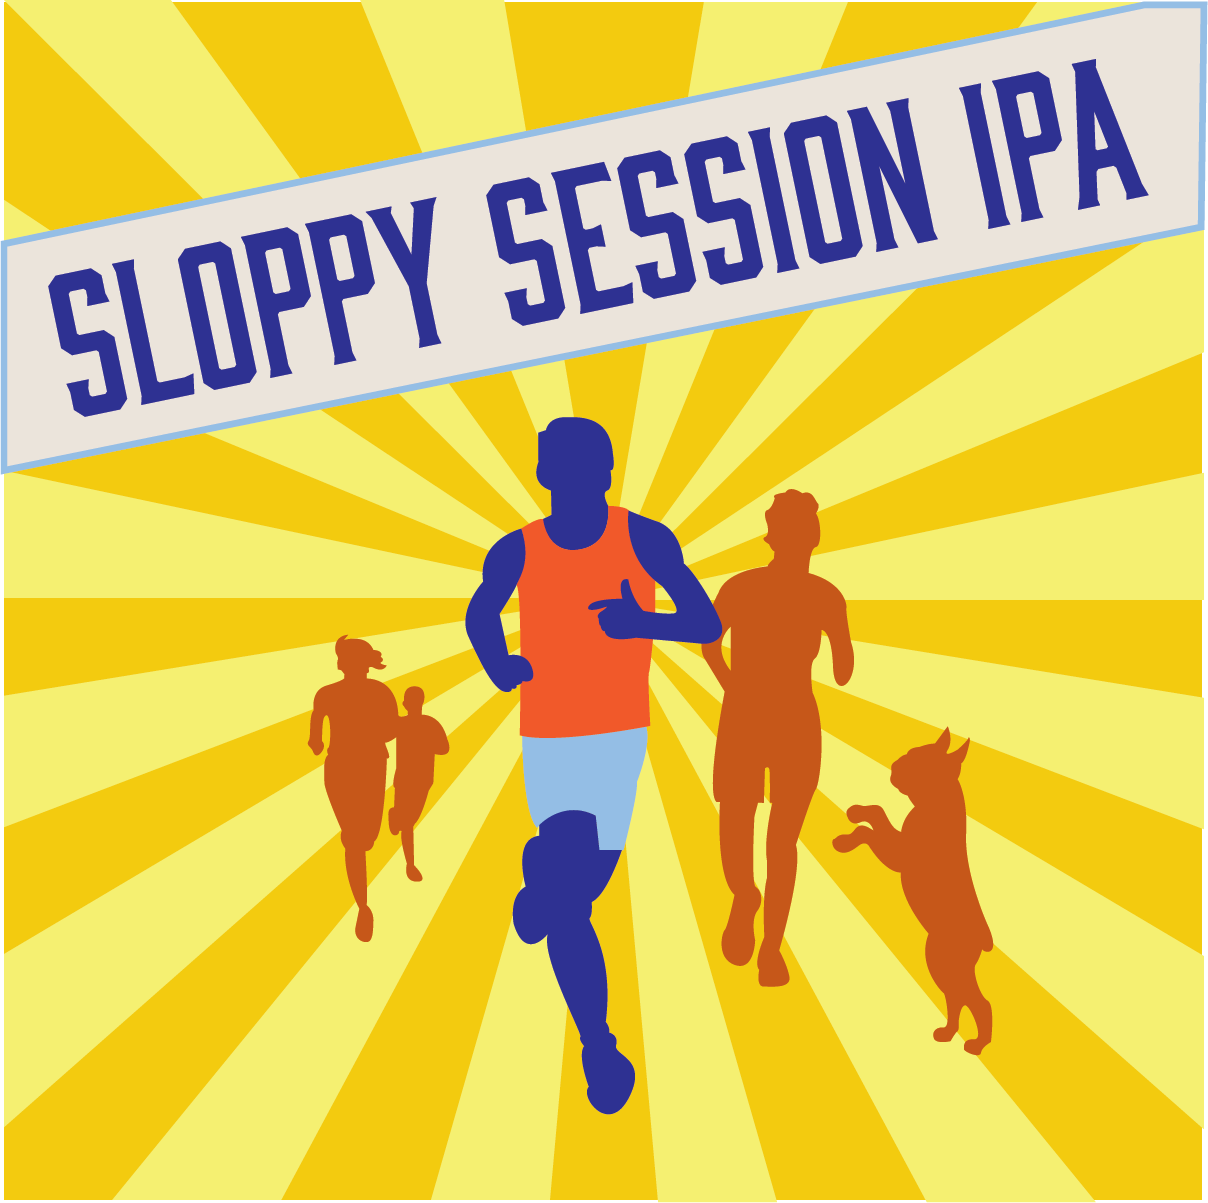 Sloppy Session IPA